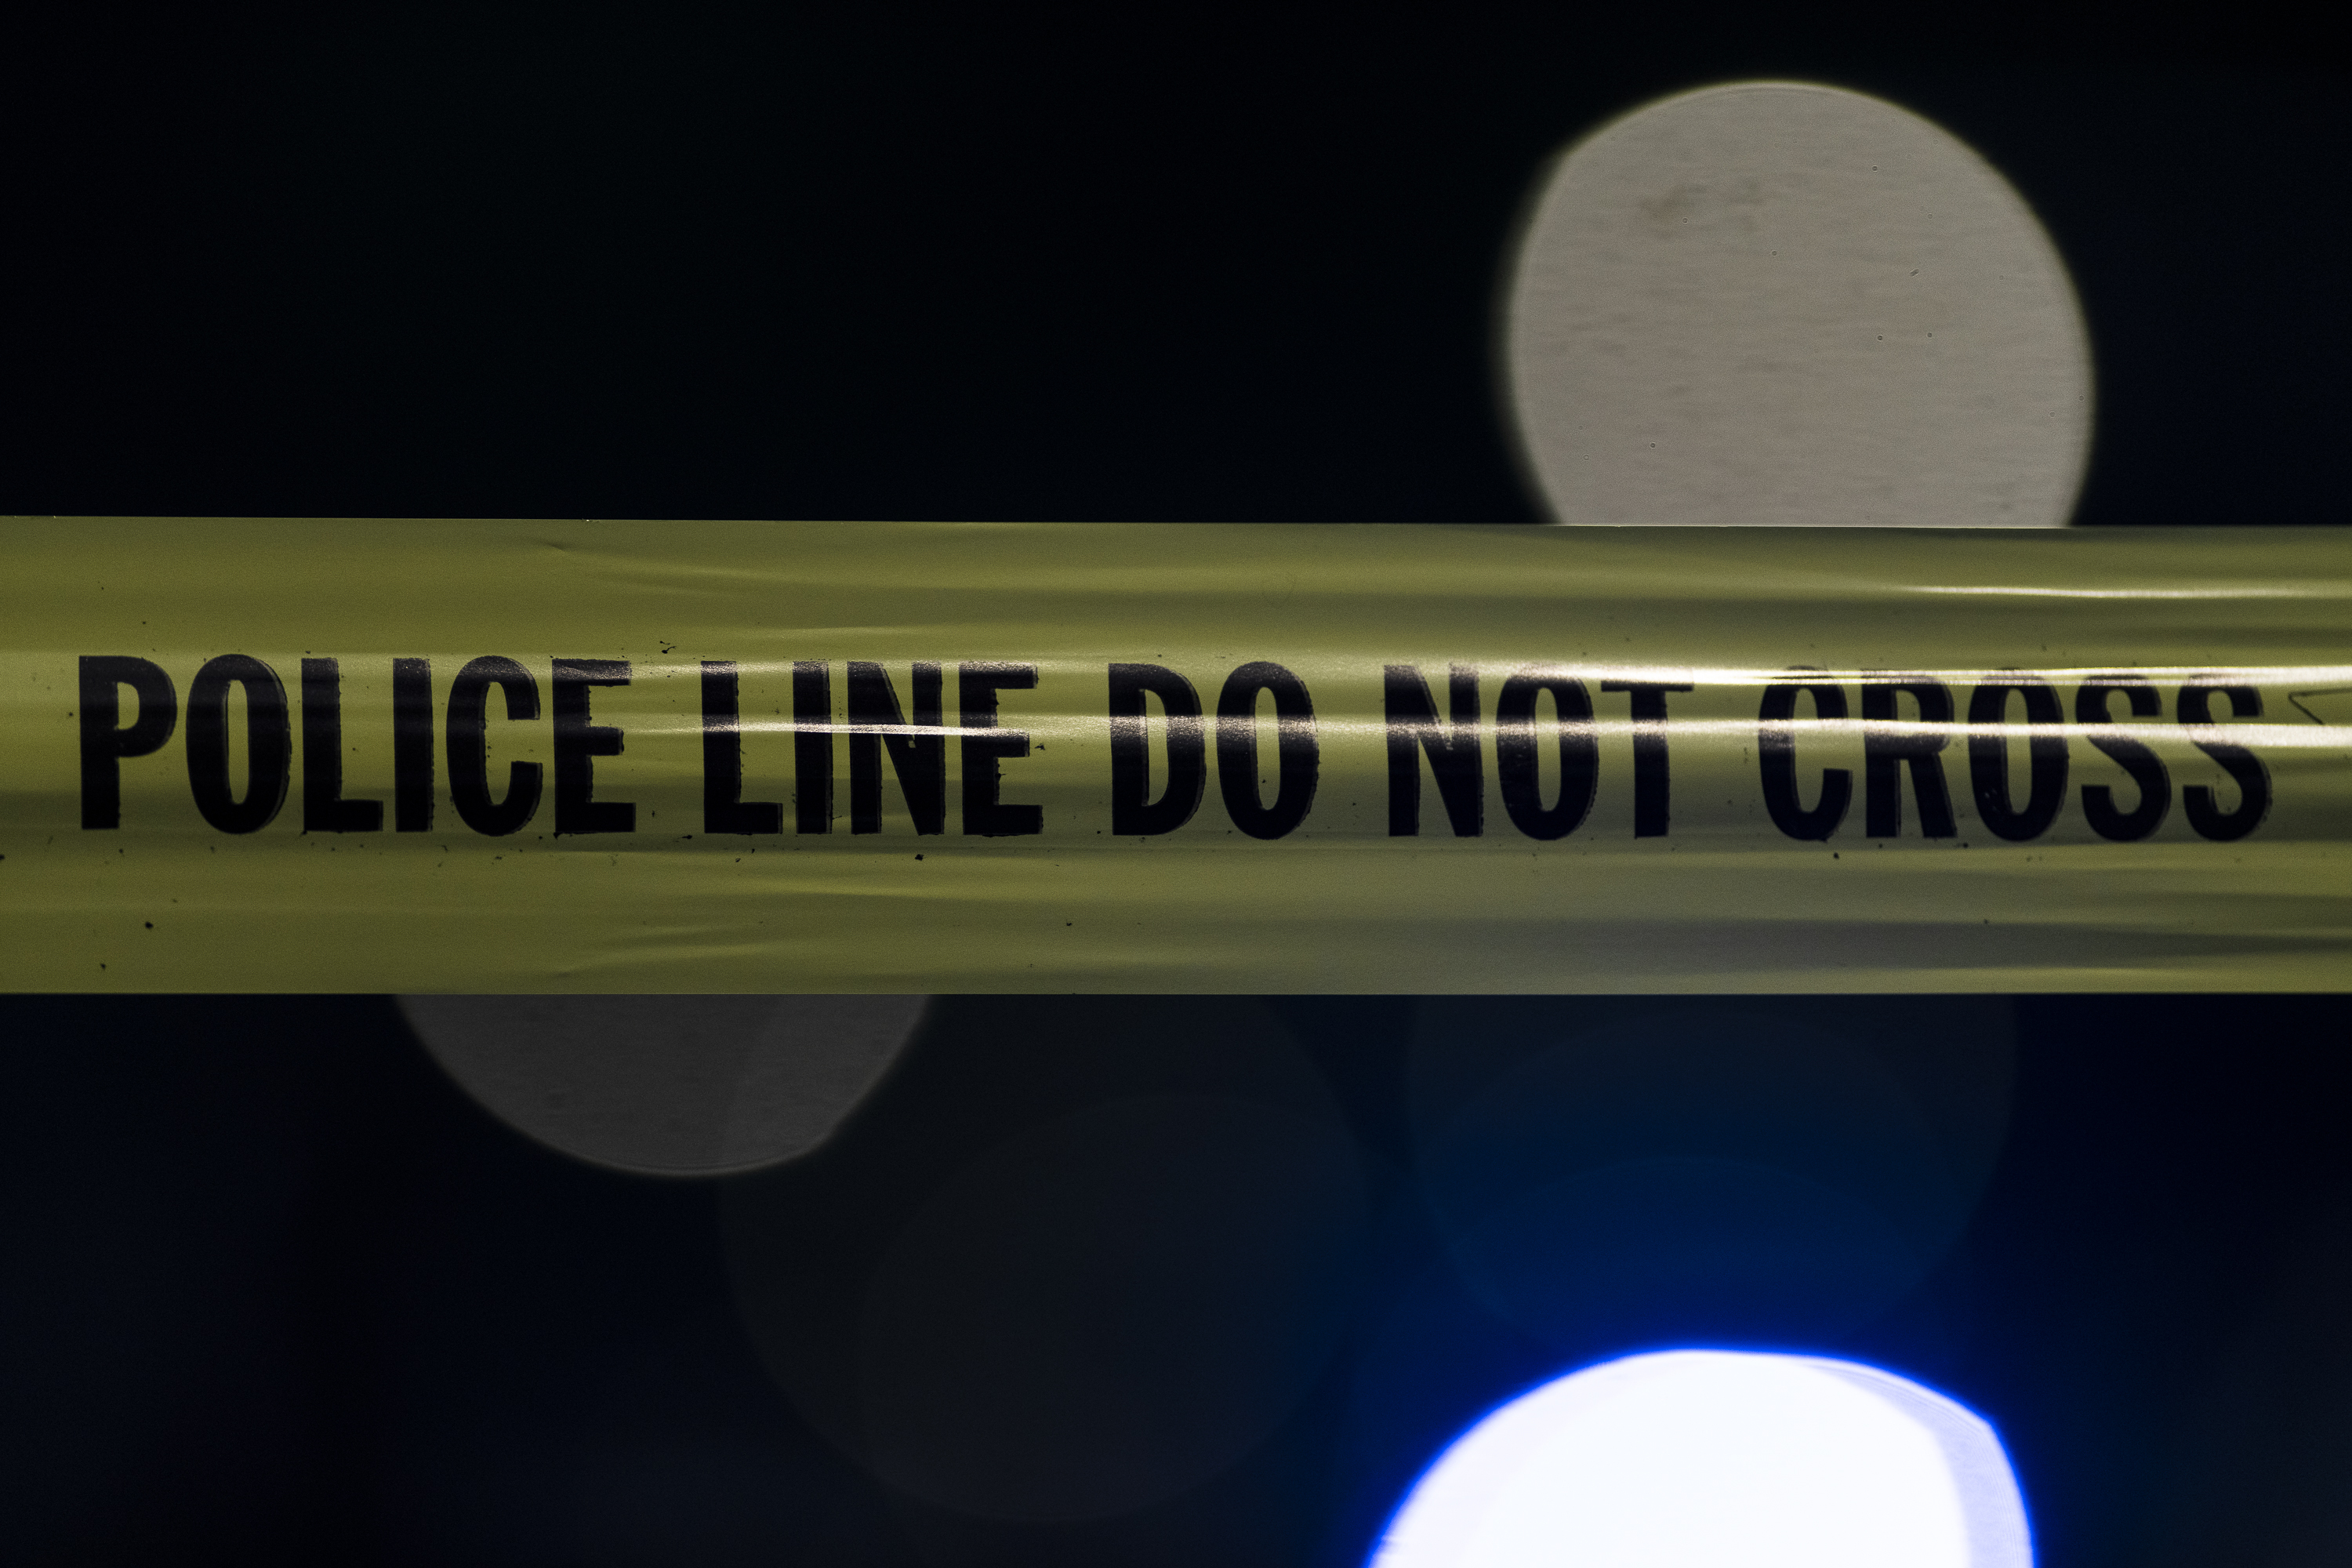 A man was found fatally shot July 11, 2020, in the 7000 block of South King Drive.